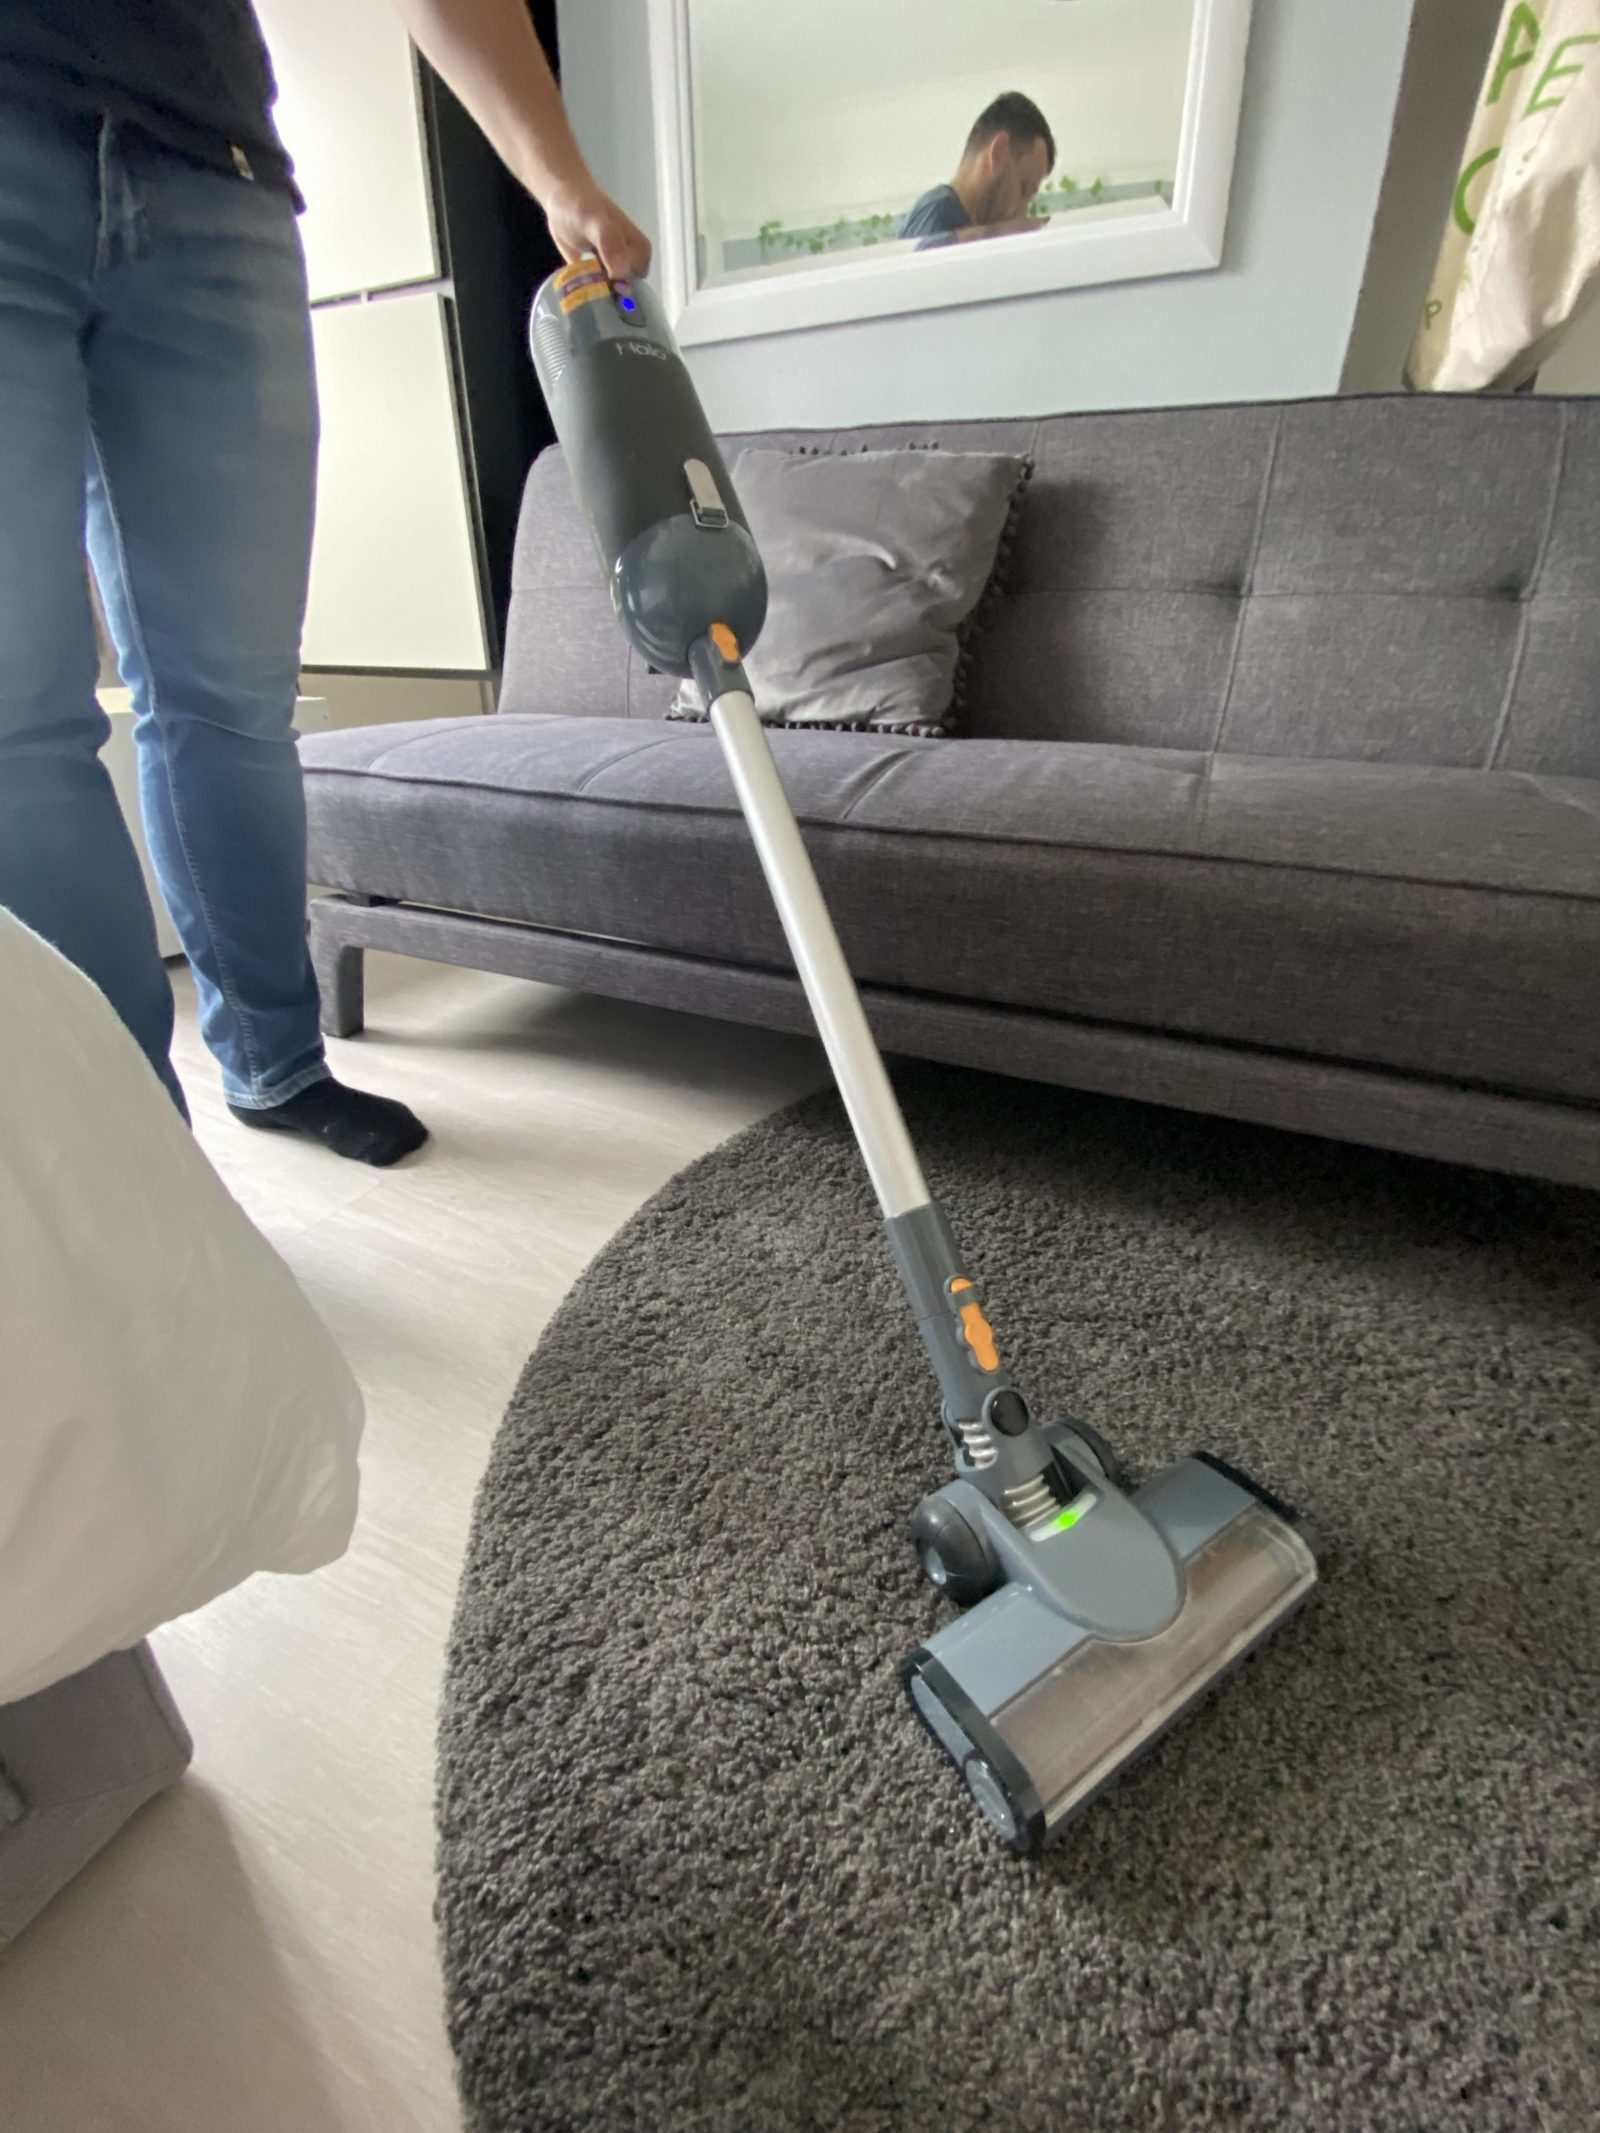 5 Vacuum Cleaners Aimed At Families Reviewed, IMG 4587 1600x2133%, daily-dad%